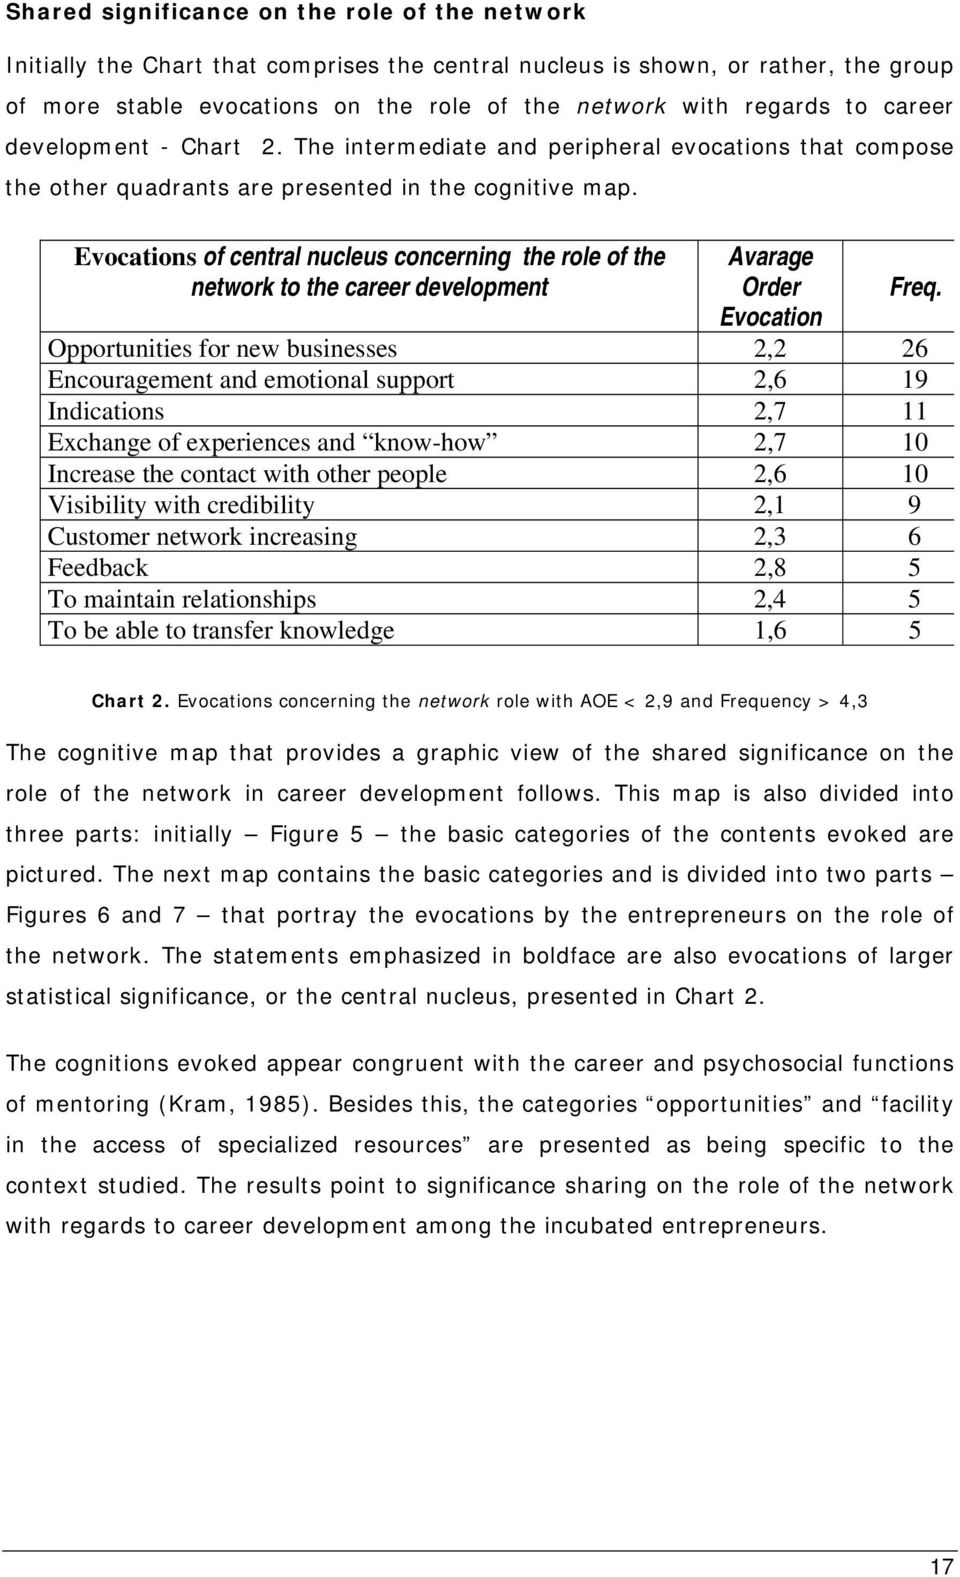 Evocations of central nucleus concerning the role of the network to the career development Avarage Order Evocation Opportunities for new businesses 2,2 26 Encouragement and emotional support 2,6 19